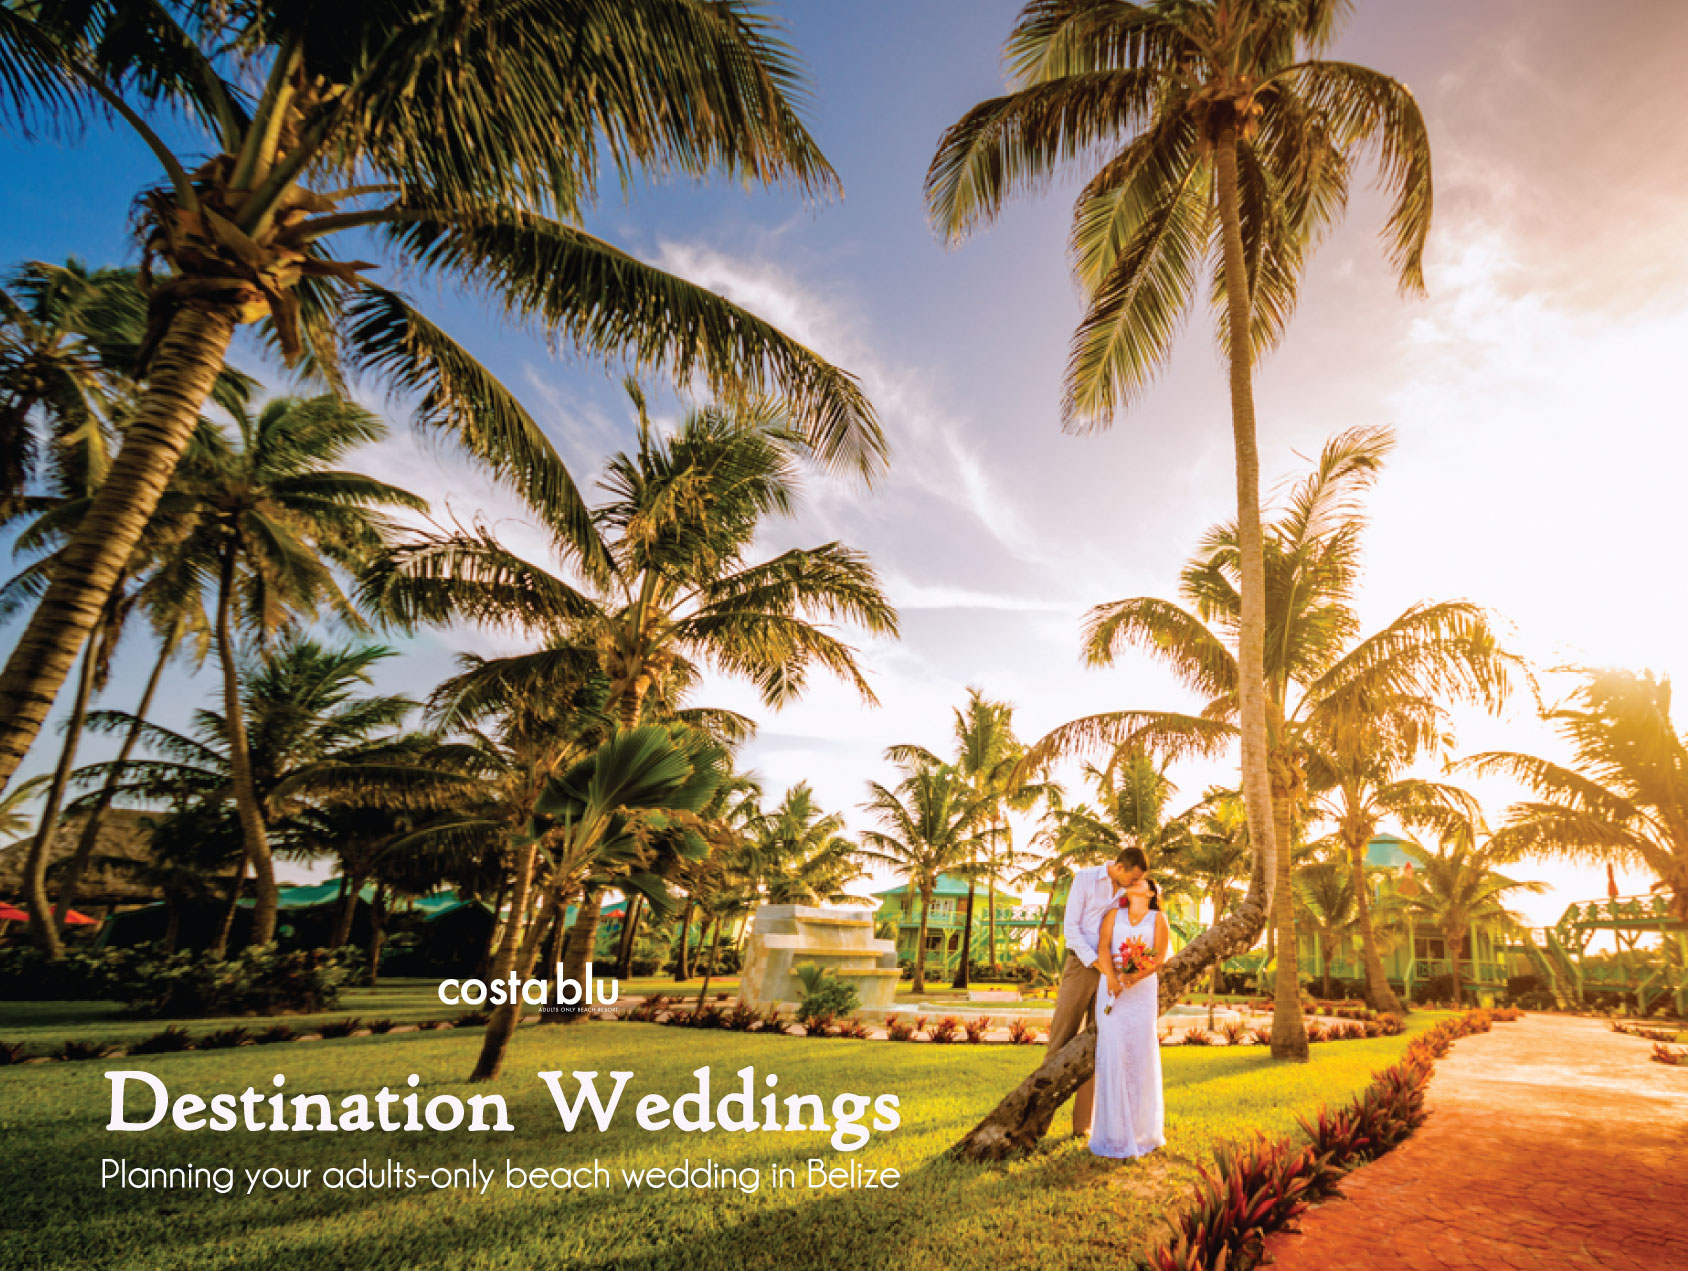 Destination-Weddings-Adults only